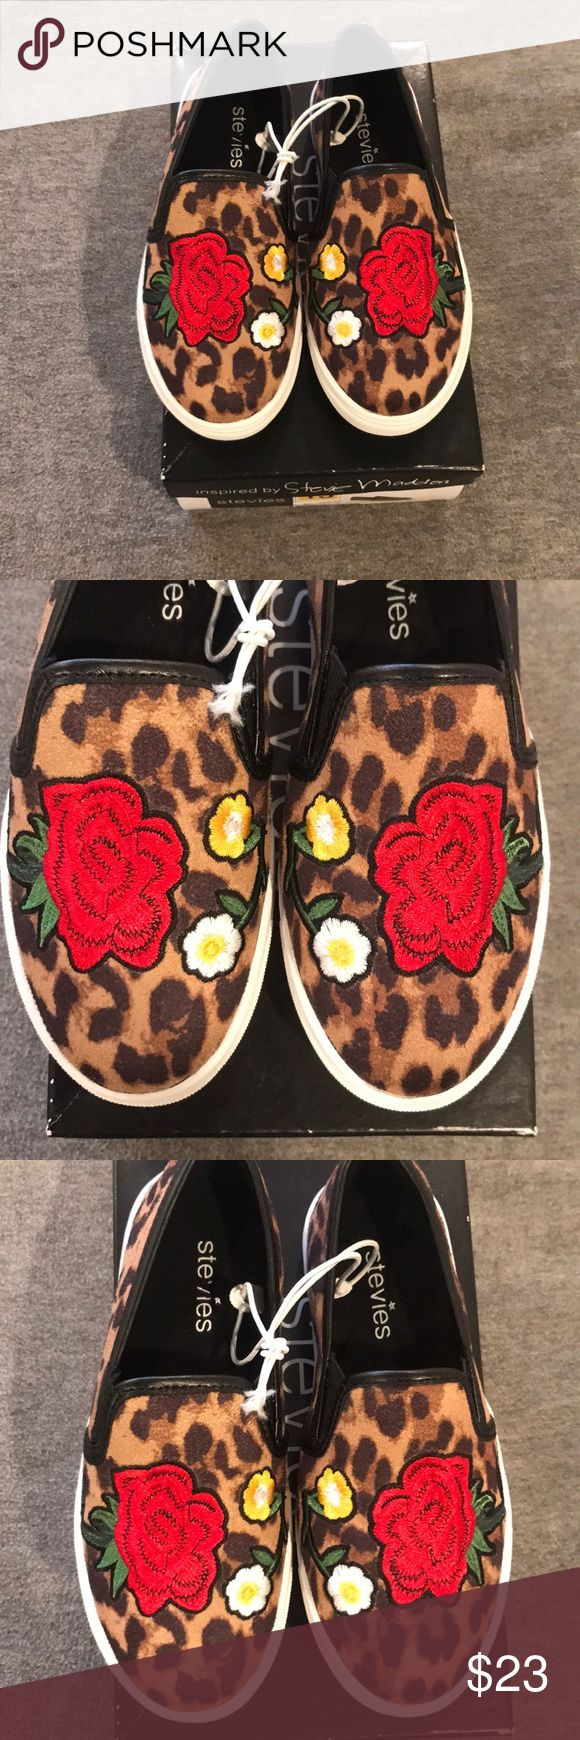 Stevie Madden girl sneakers nwt BRAND NEW WITH TAGS INSPIRED BY STEVIE MADDEN STEVE MADDENS DAUGHTER GIRL SNEAKERS I HAVE SIZE 13 & SIZE 2 ANY QUESTIONS PLEASE ASK Steve Madden Shoes Sneakers